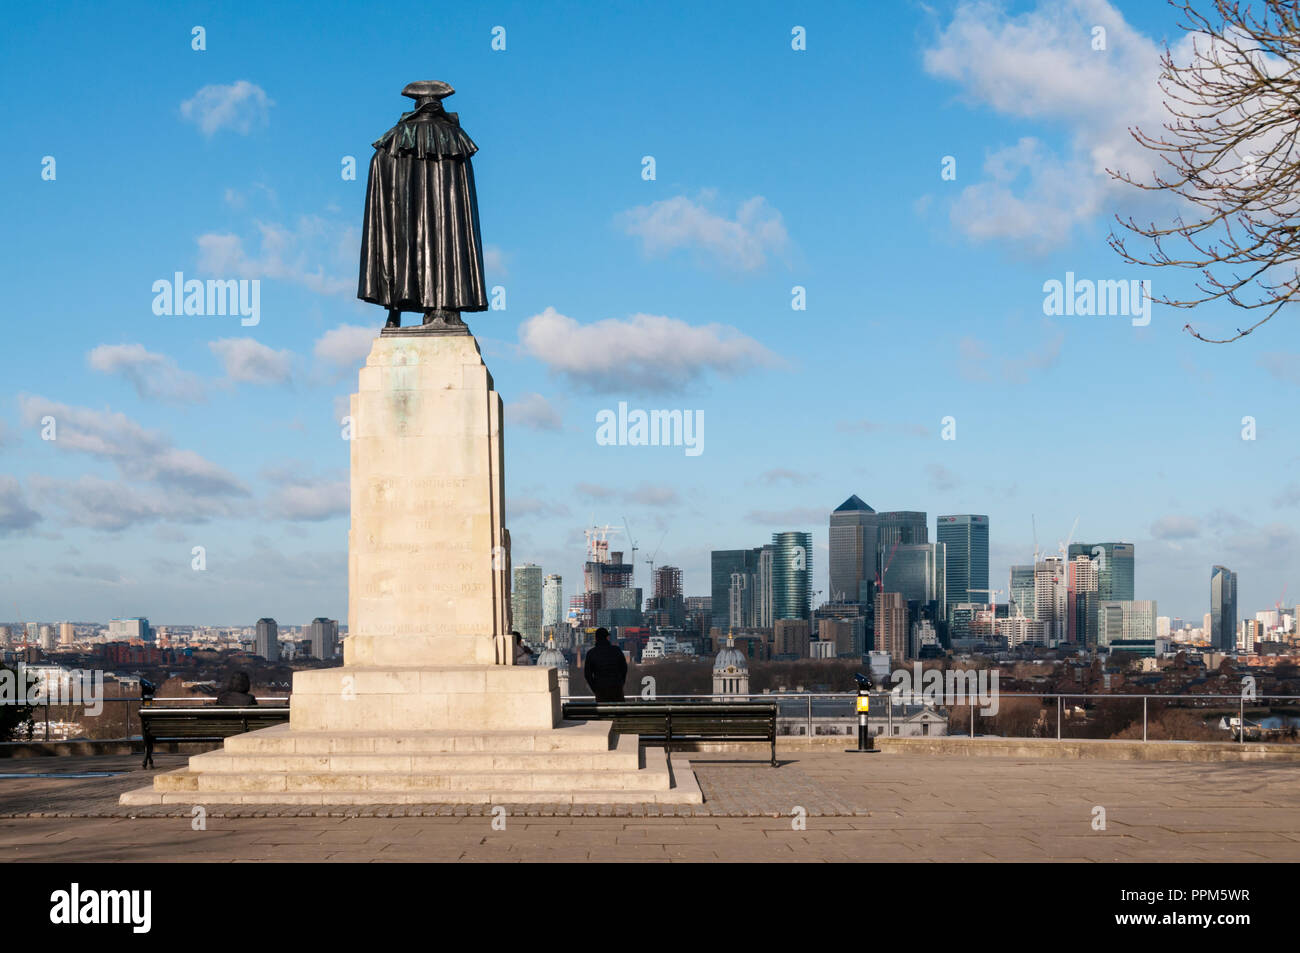 General Wolfe statue at Greenwich overlooking London Docklands. - Stock Image